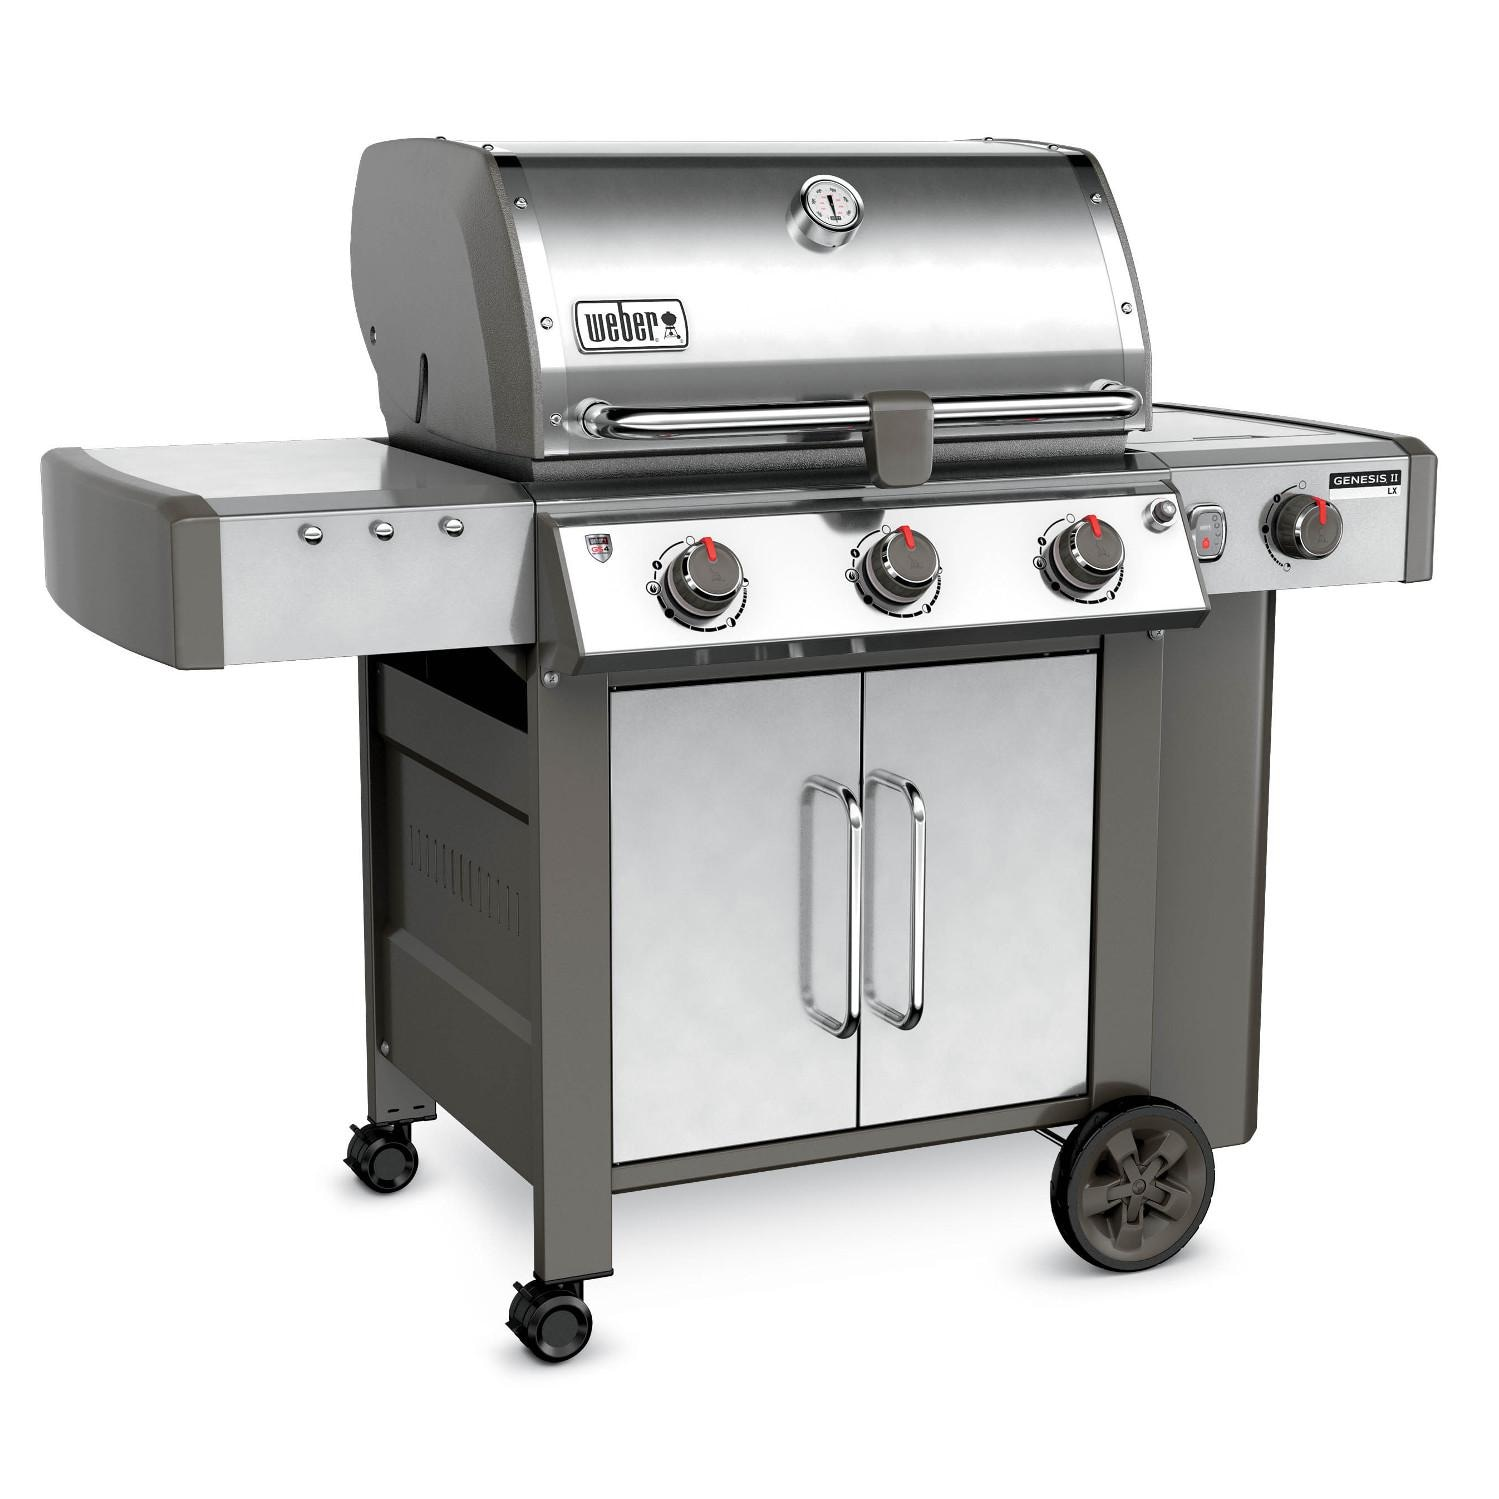 weber genesis ii lx s 340 freestanding propane gas grill. Black Bedroom Furniture Sets. Home Design Ideas